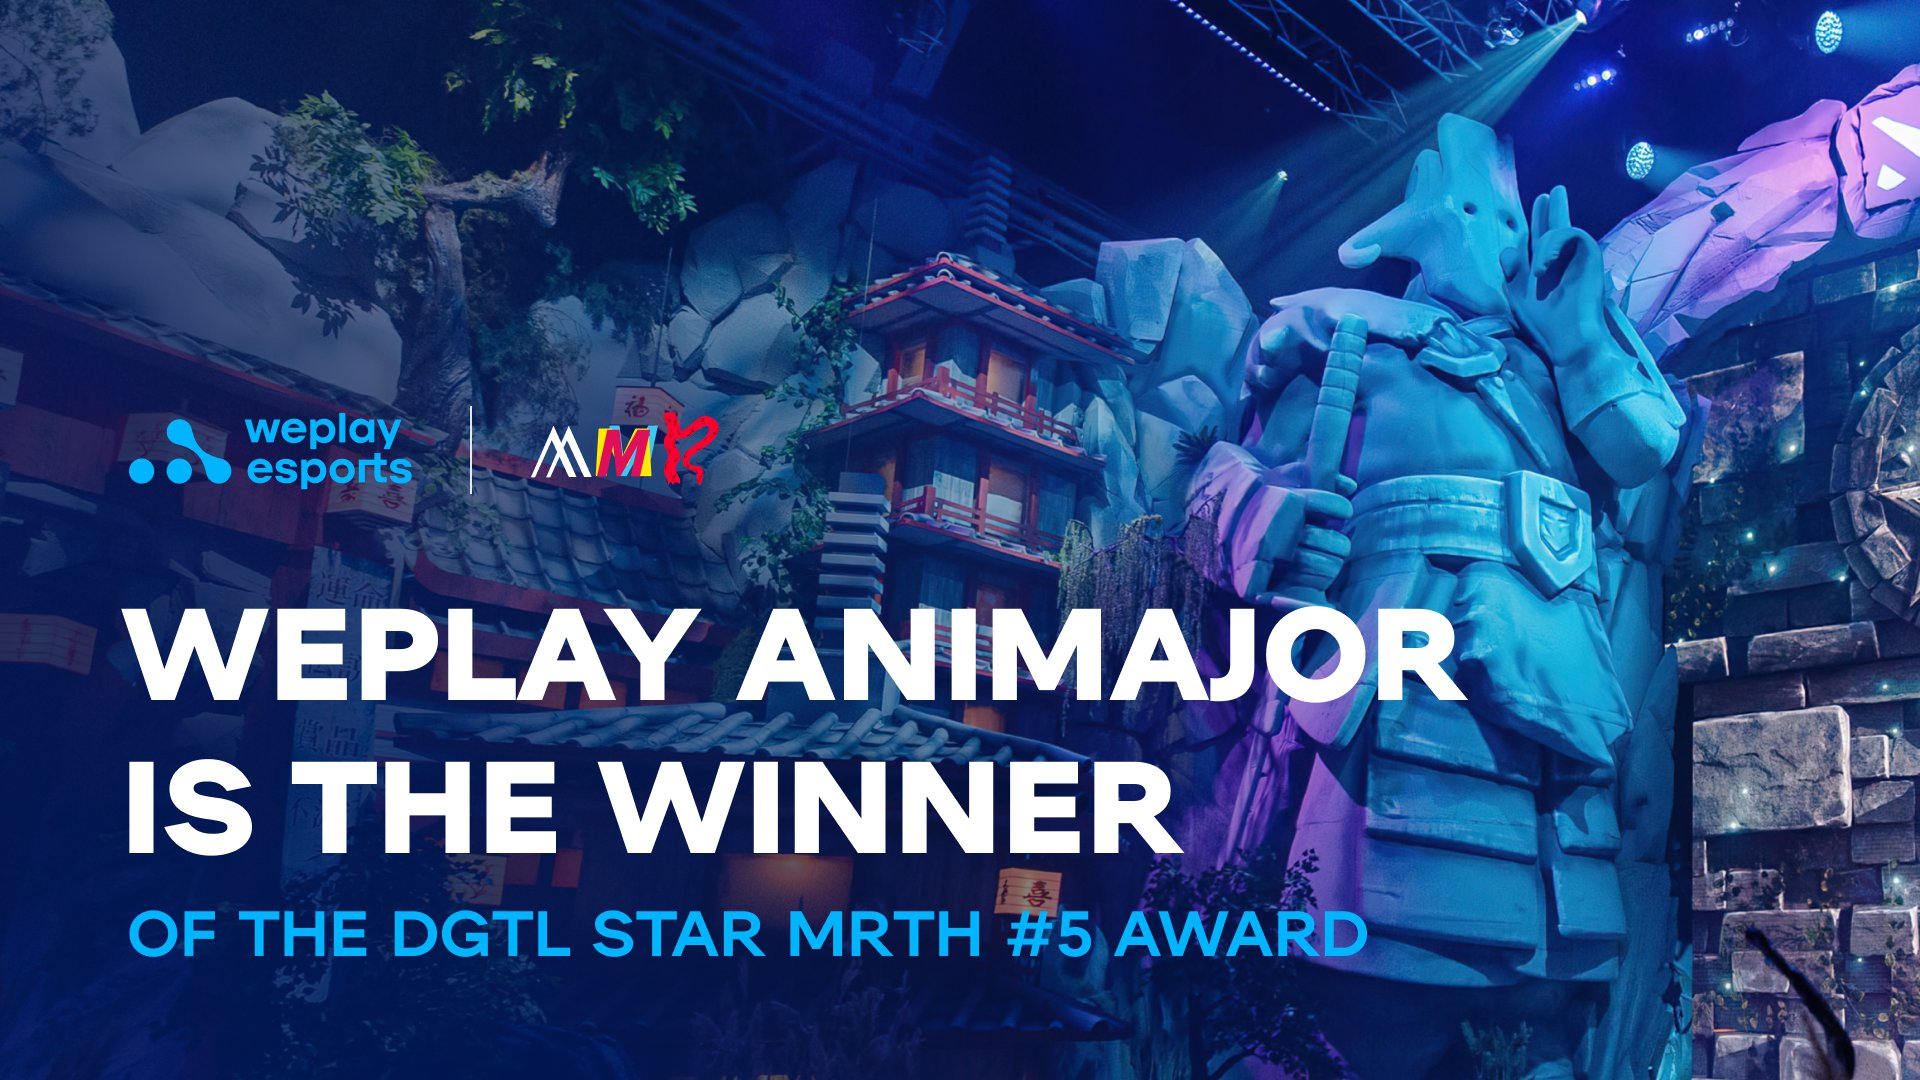 WePlay Holding is the winner of the DGTL STAR MRTH #5 award. Image: WePlay Holding